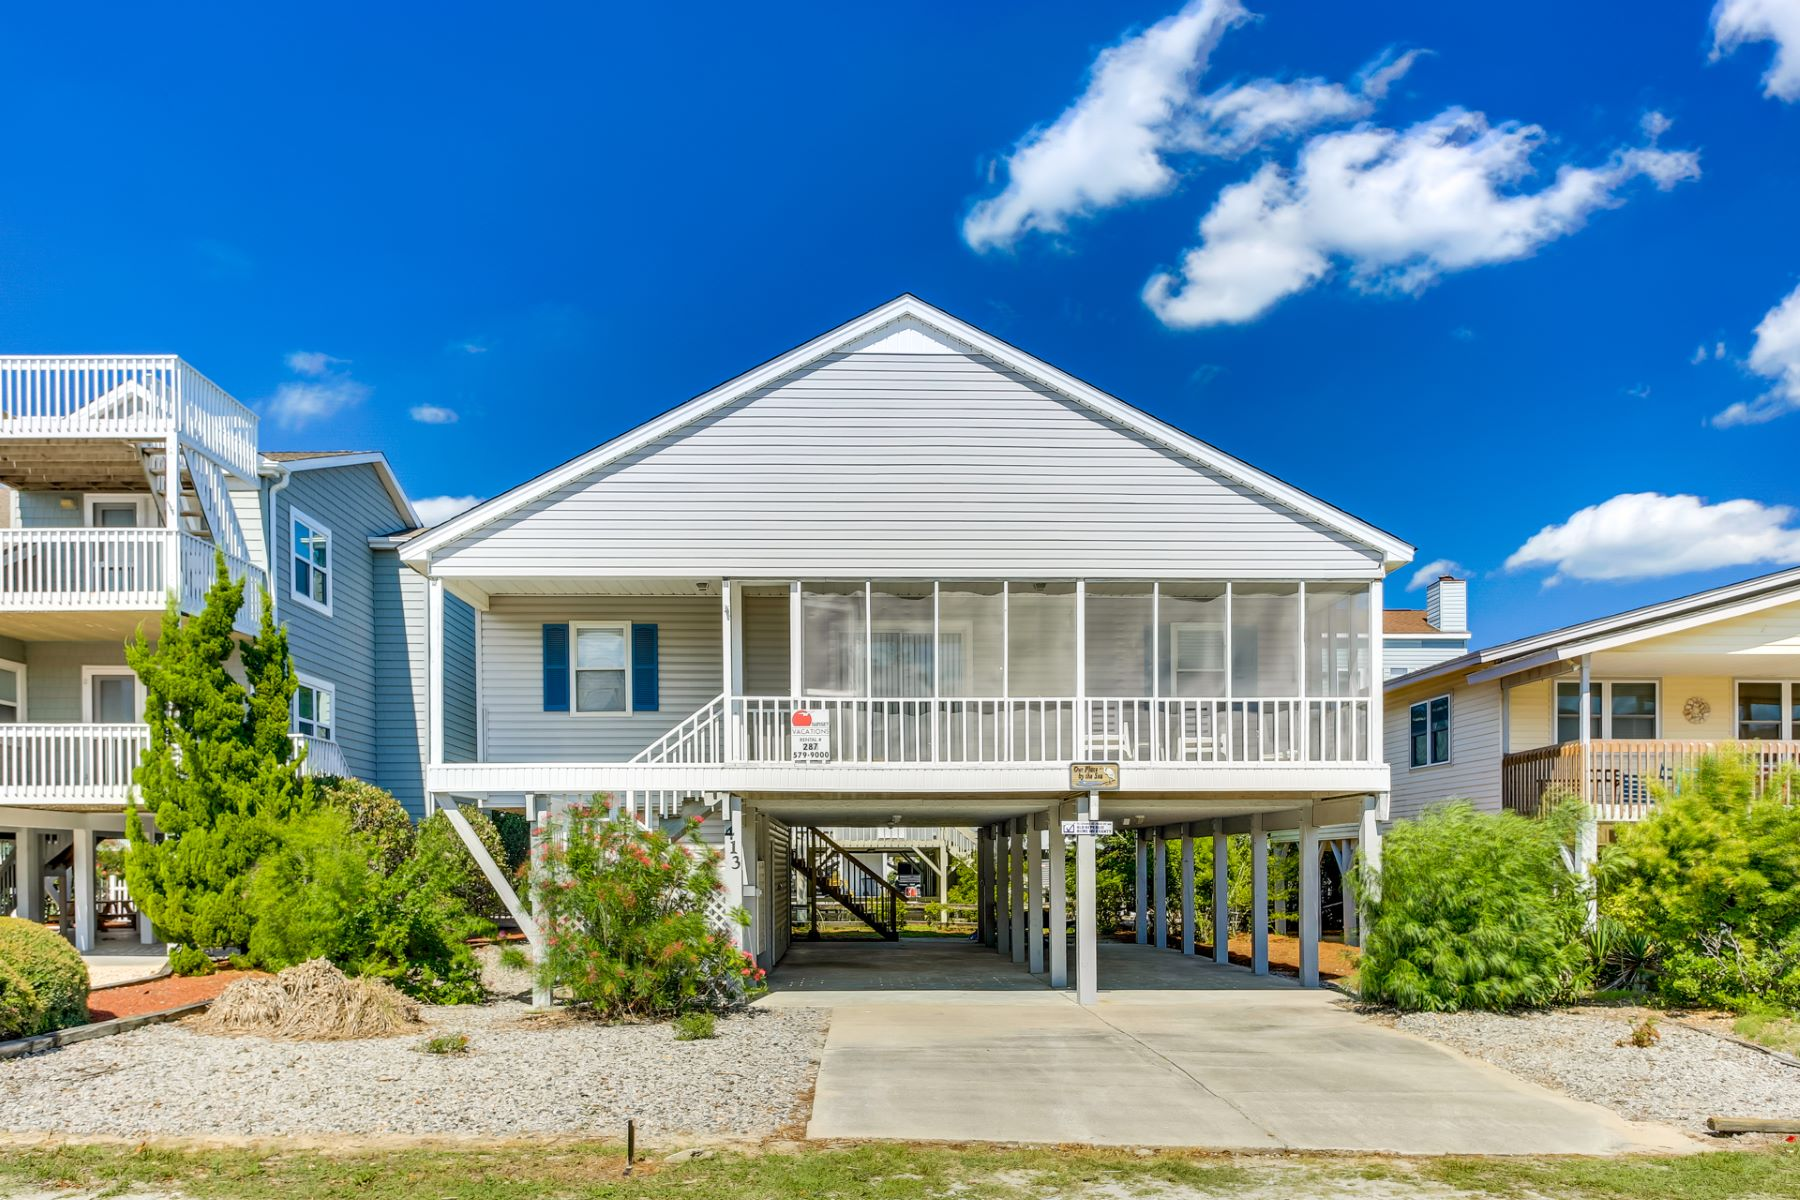 Single Family Homes for Active at Beach Cottage, Casual Coastal Living 413 E 1st Street Sunset Beach, North Carolina 28468 United States